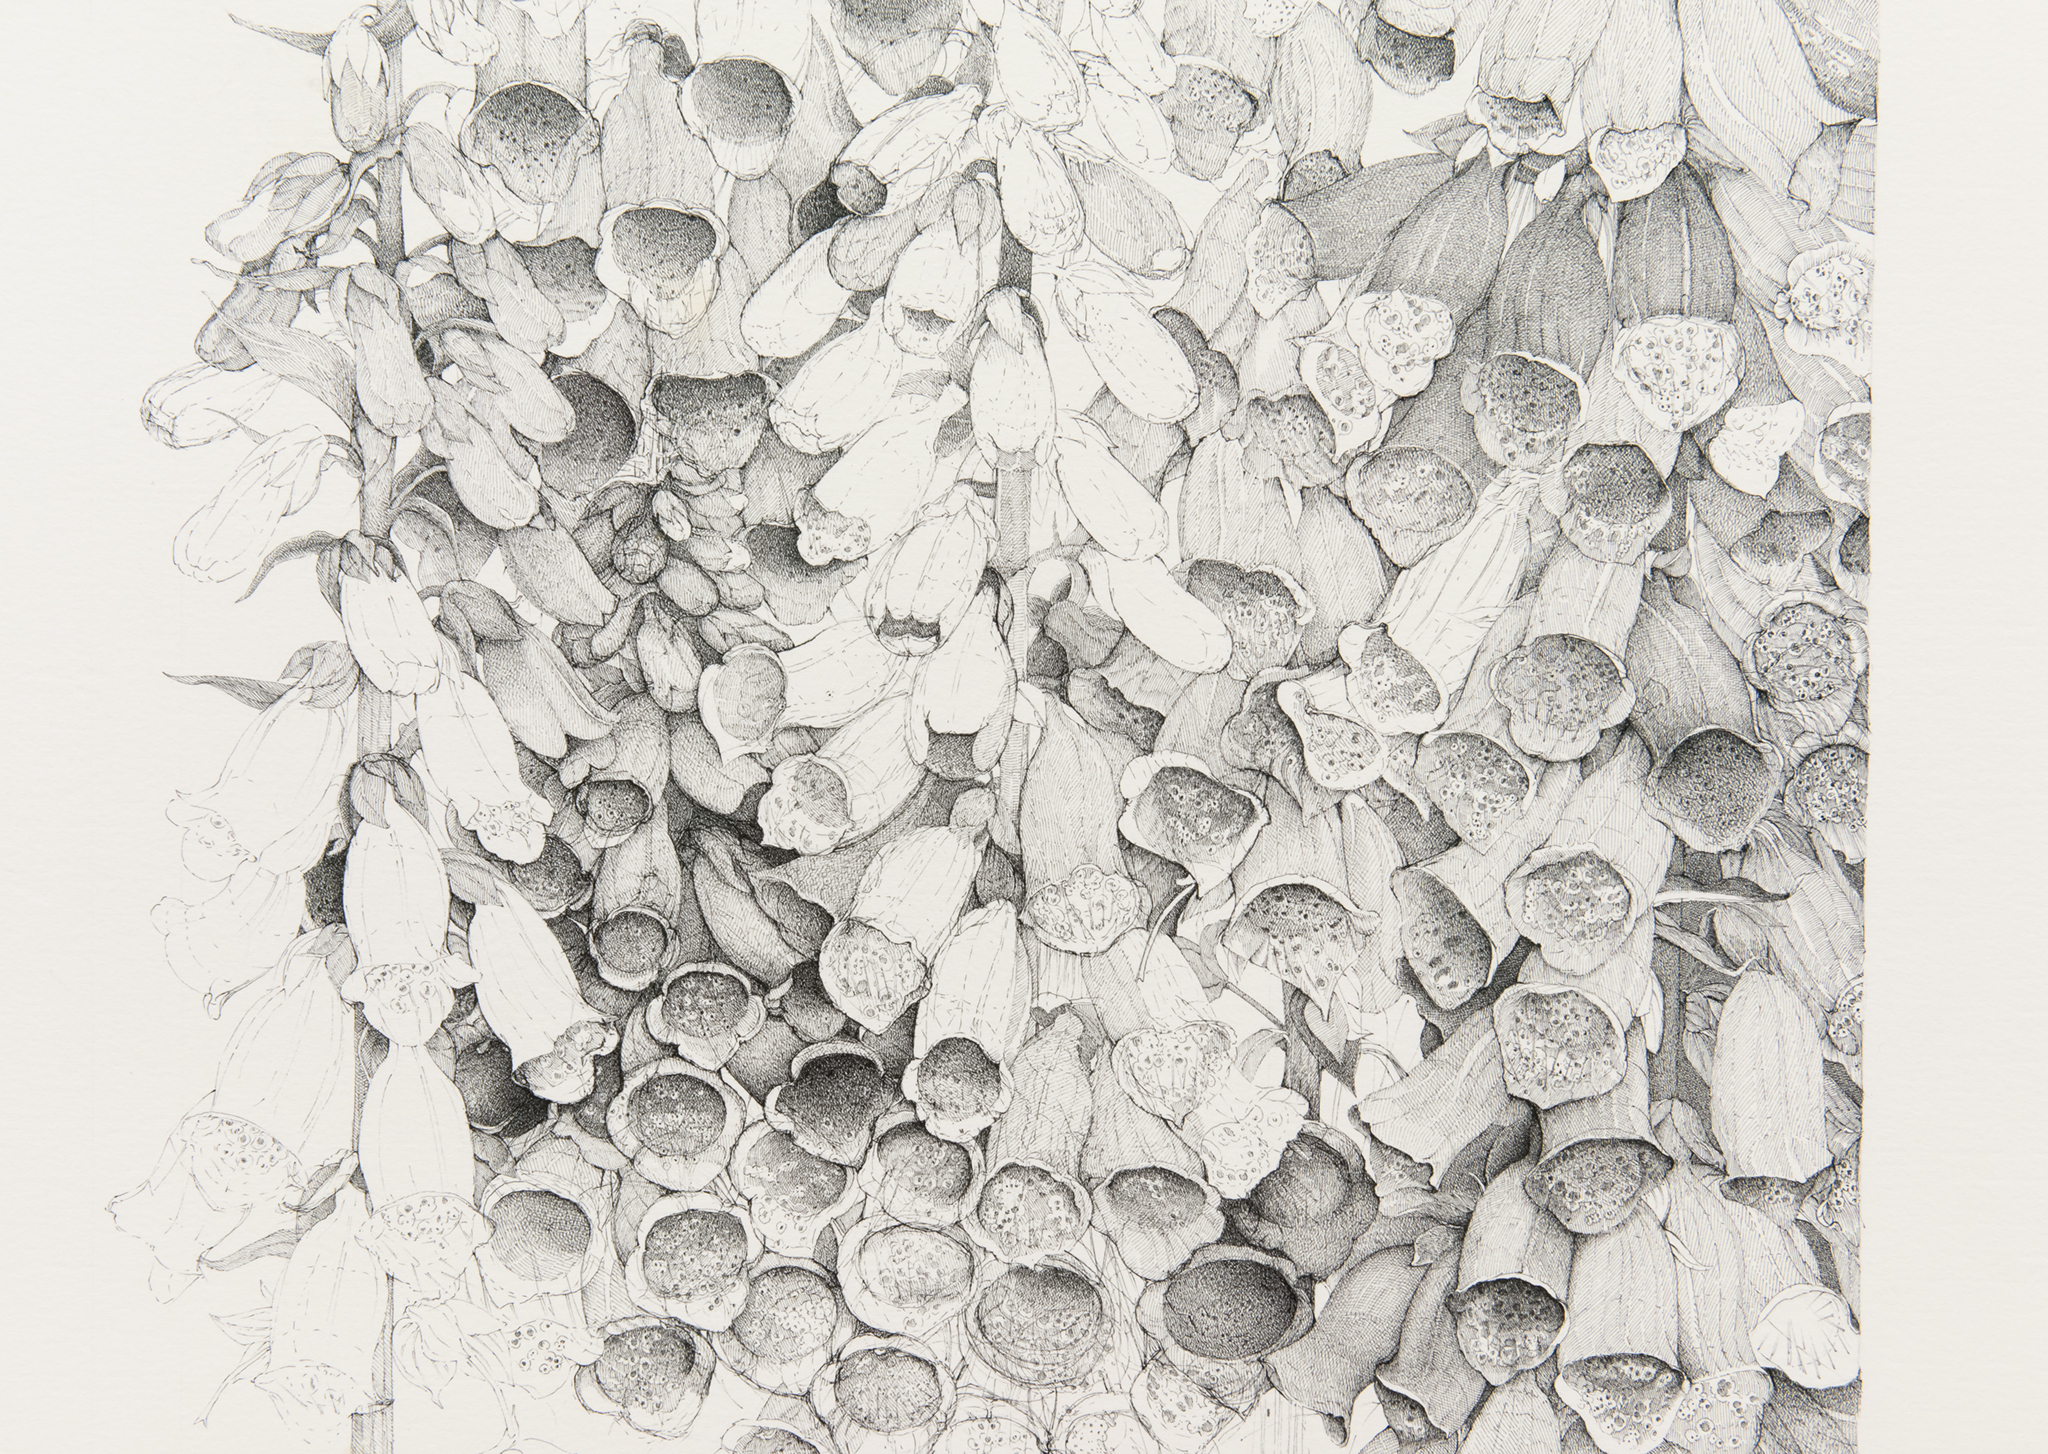 ​Charmian Johnson, detail view, completed 2017, ink on paper, 26 x 34 in. (66 x 86 cm) by